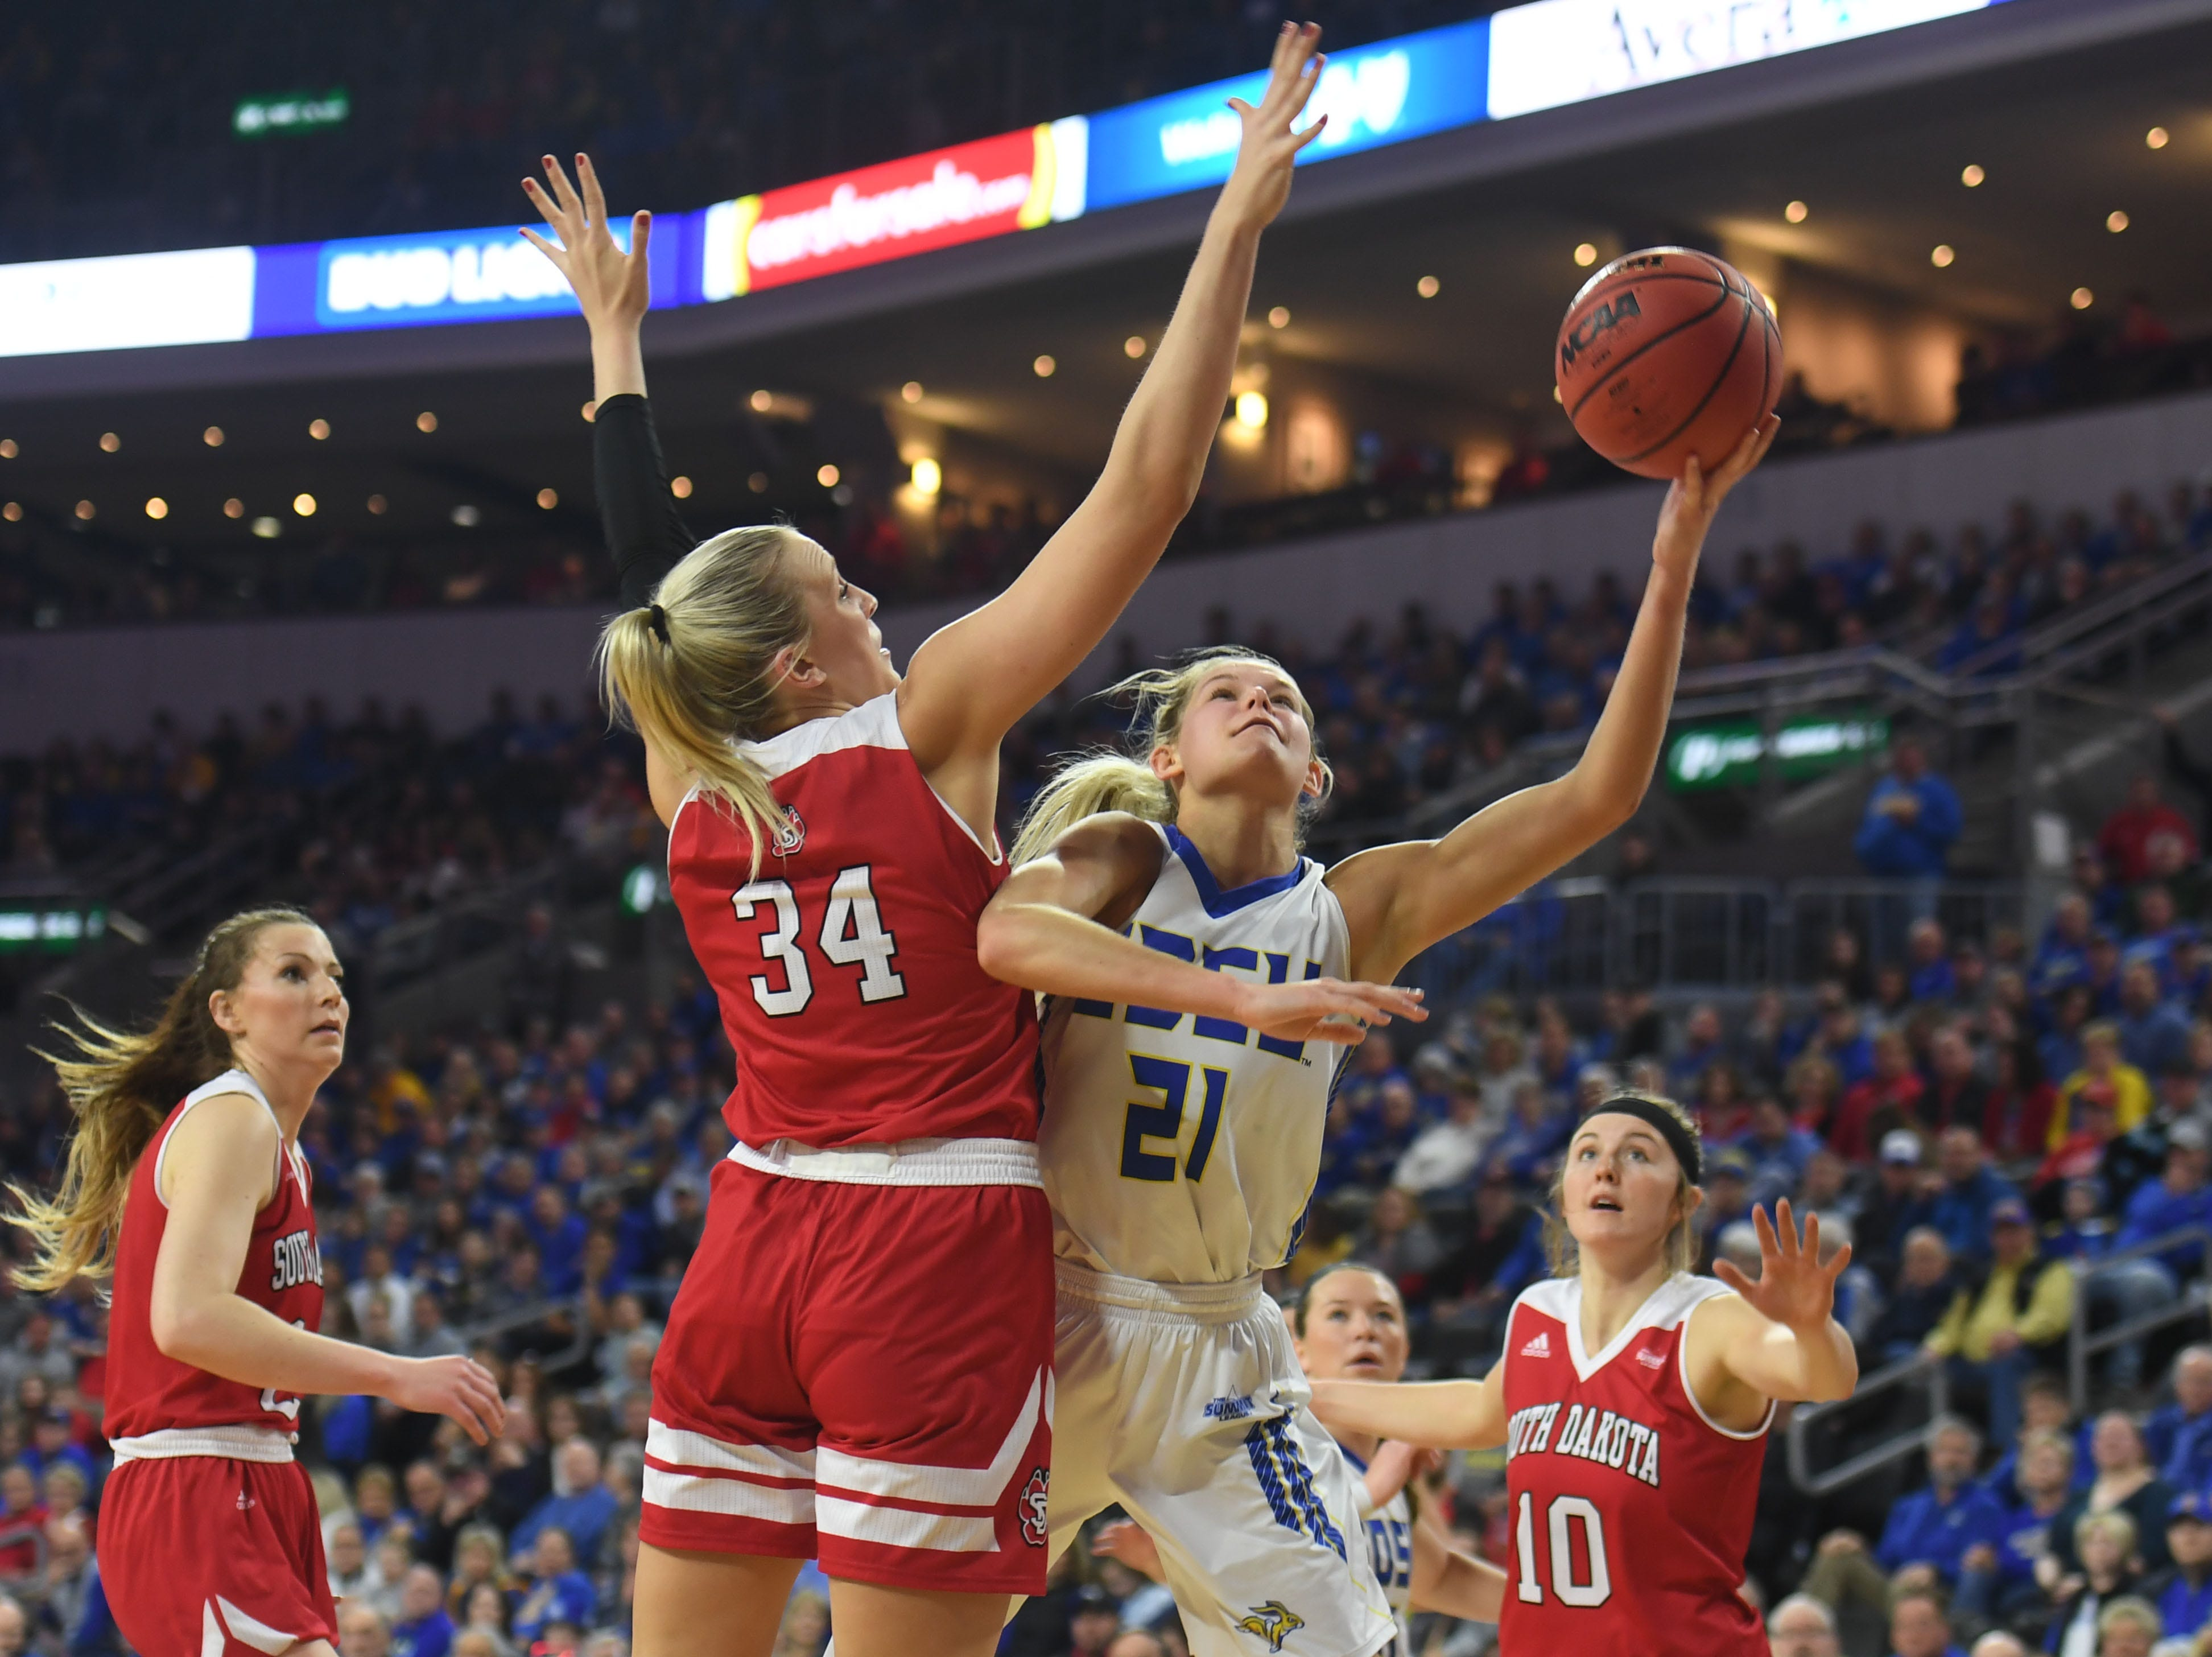 SDSU's Tylee Irwin goes against USD's Hannah Sjerven under the net Tuesday, March 12, in the Summit League women's championship at the Denny Sanford Premier Center in Sioux Falls.